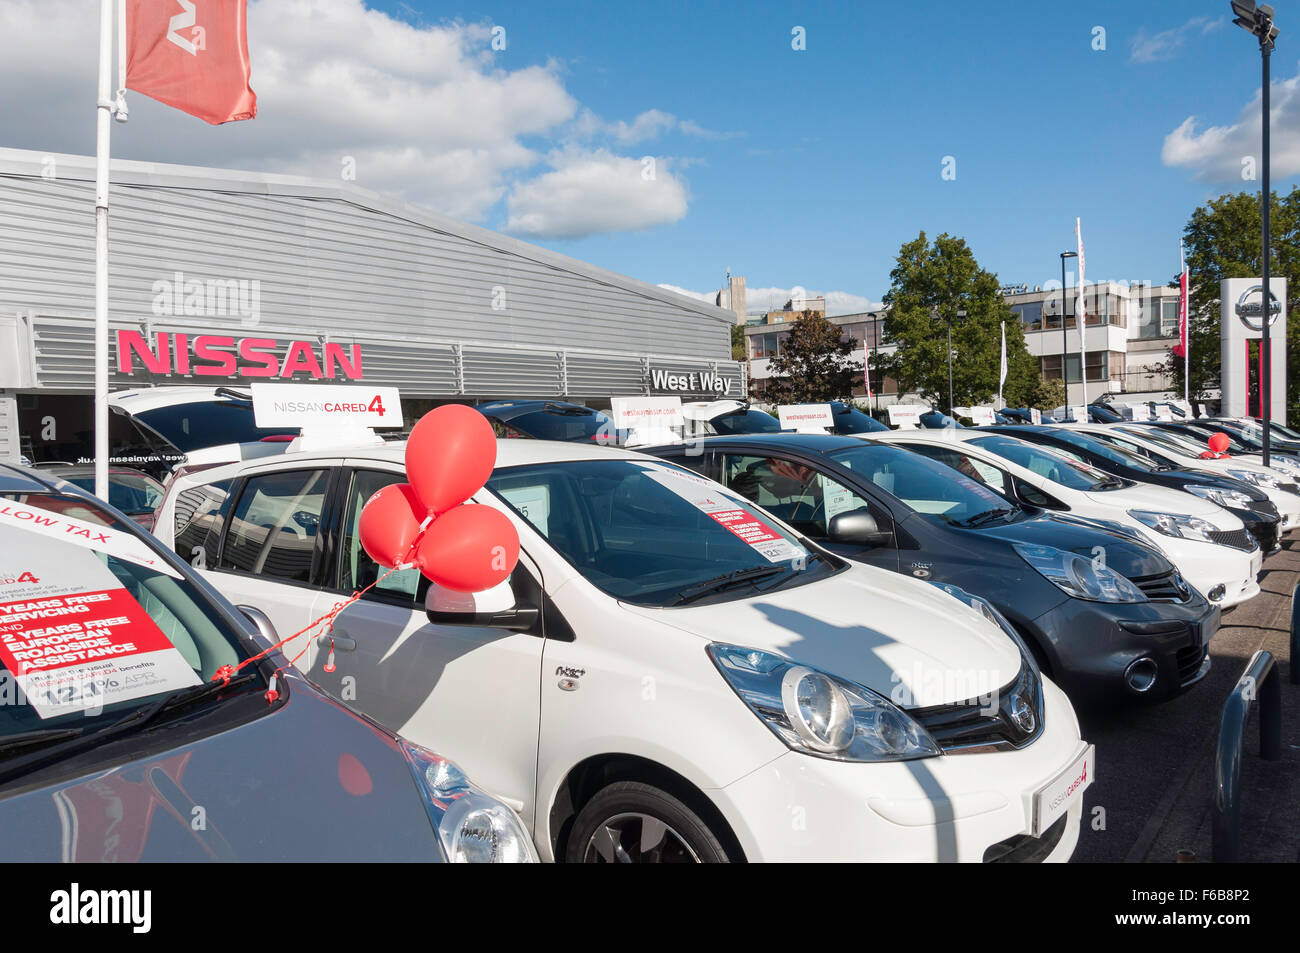 Used Car Dealerships Windsor >> West Way Nissan Cared4 Used Car Sales Yard Windsor Way